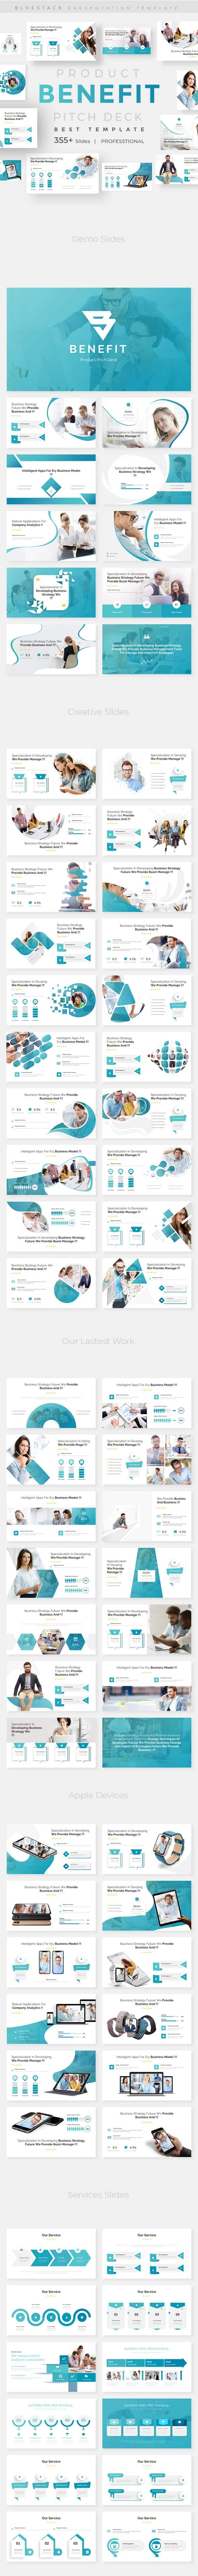 product benefit pitch deck powerpoint template